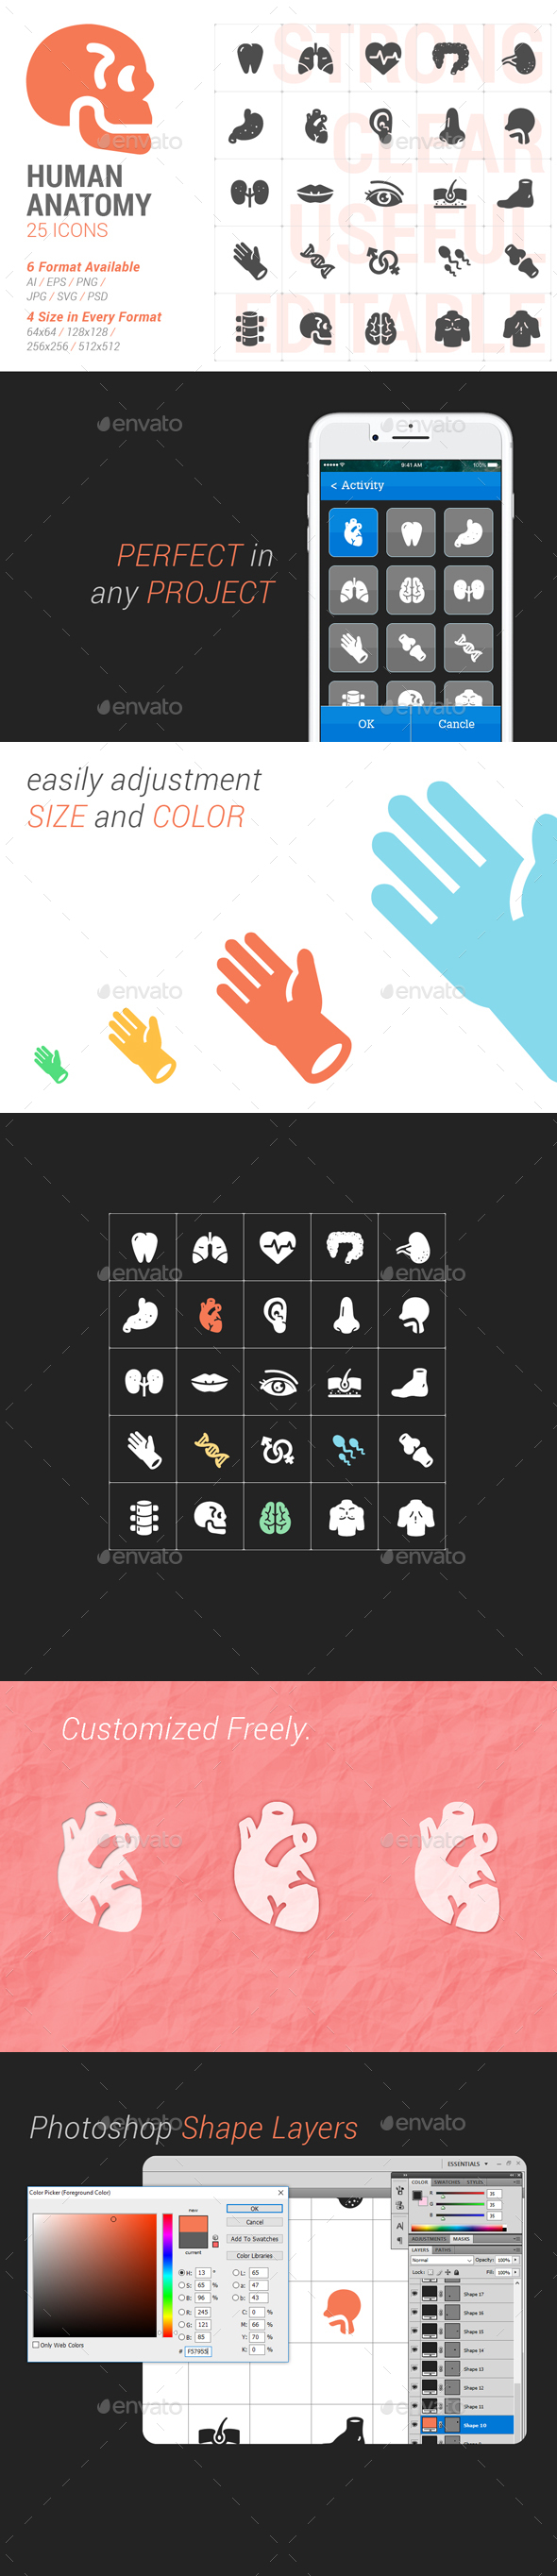 Human Anatomy Filled Icon - Icons